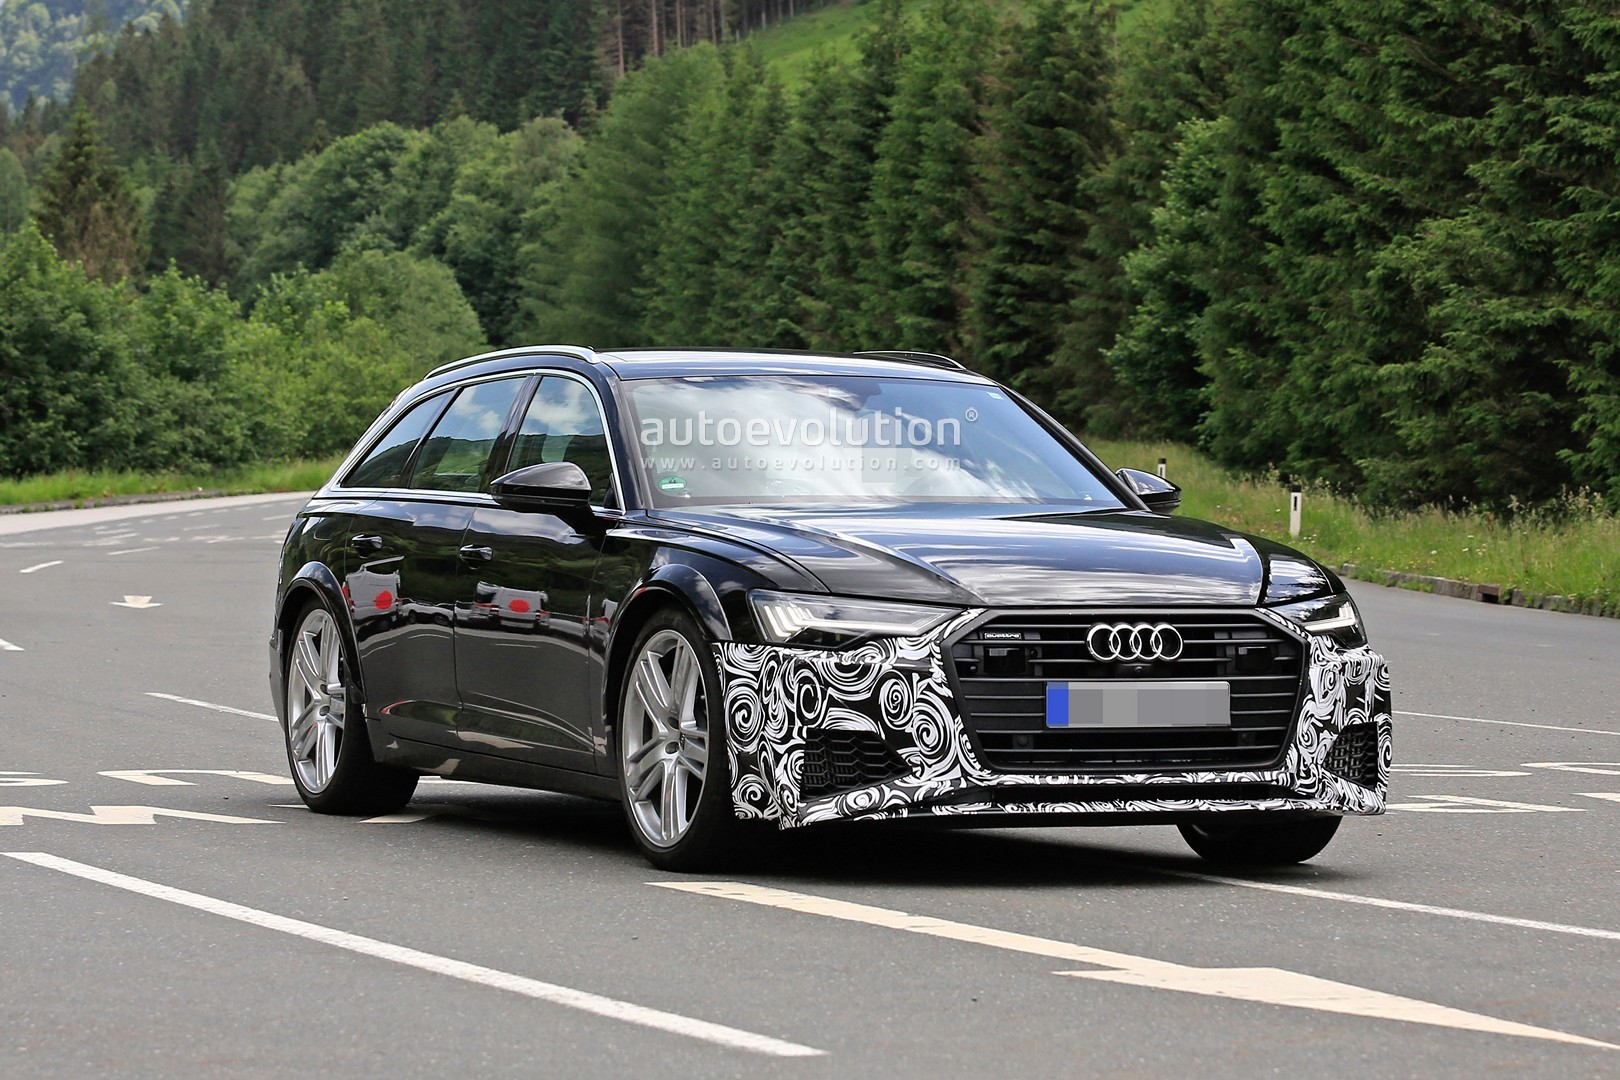 13 All New 2020 Audi S7 Release